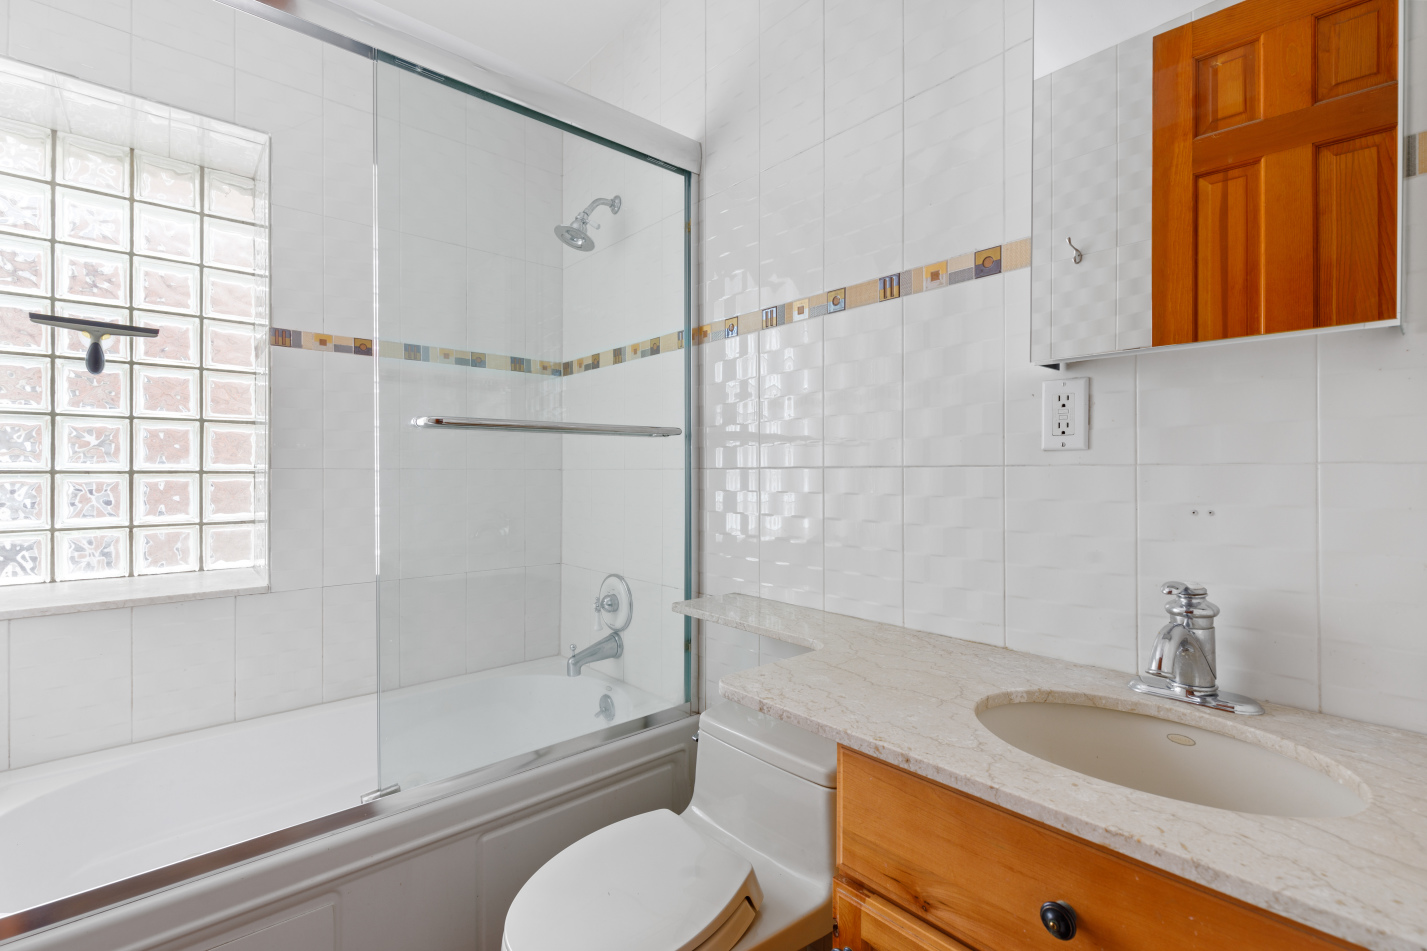 Apartment for sale at 12-14 31st Avenue, Apt ONE